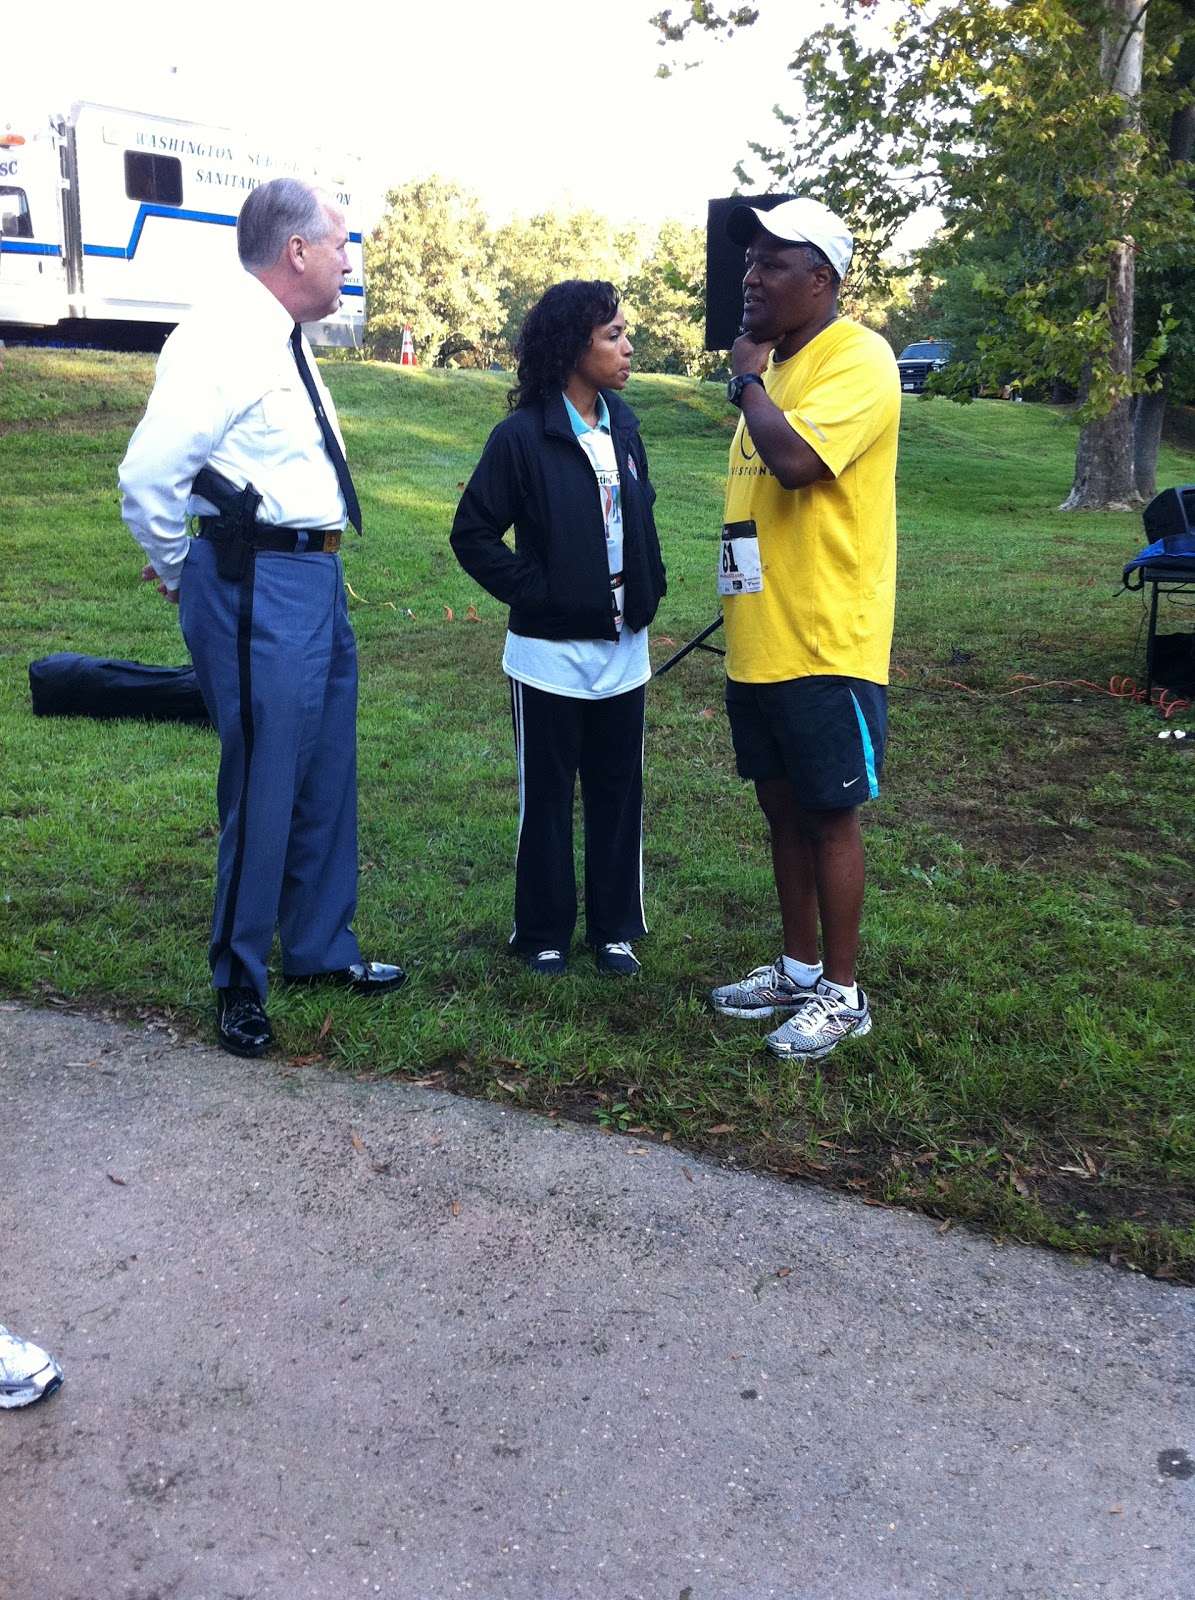 Pgpd news october 2011 prince georges county police participates in the 8th annual crime victims fund 5k run 1 mile walk 1betcityfo Images